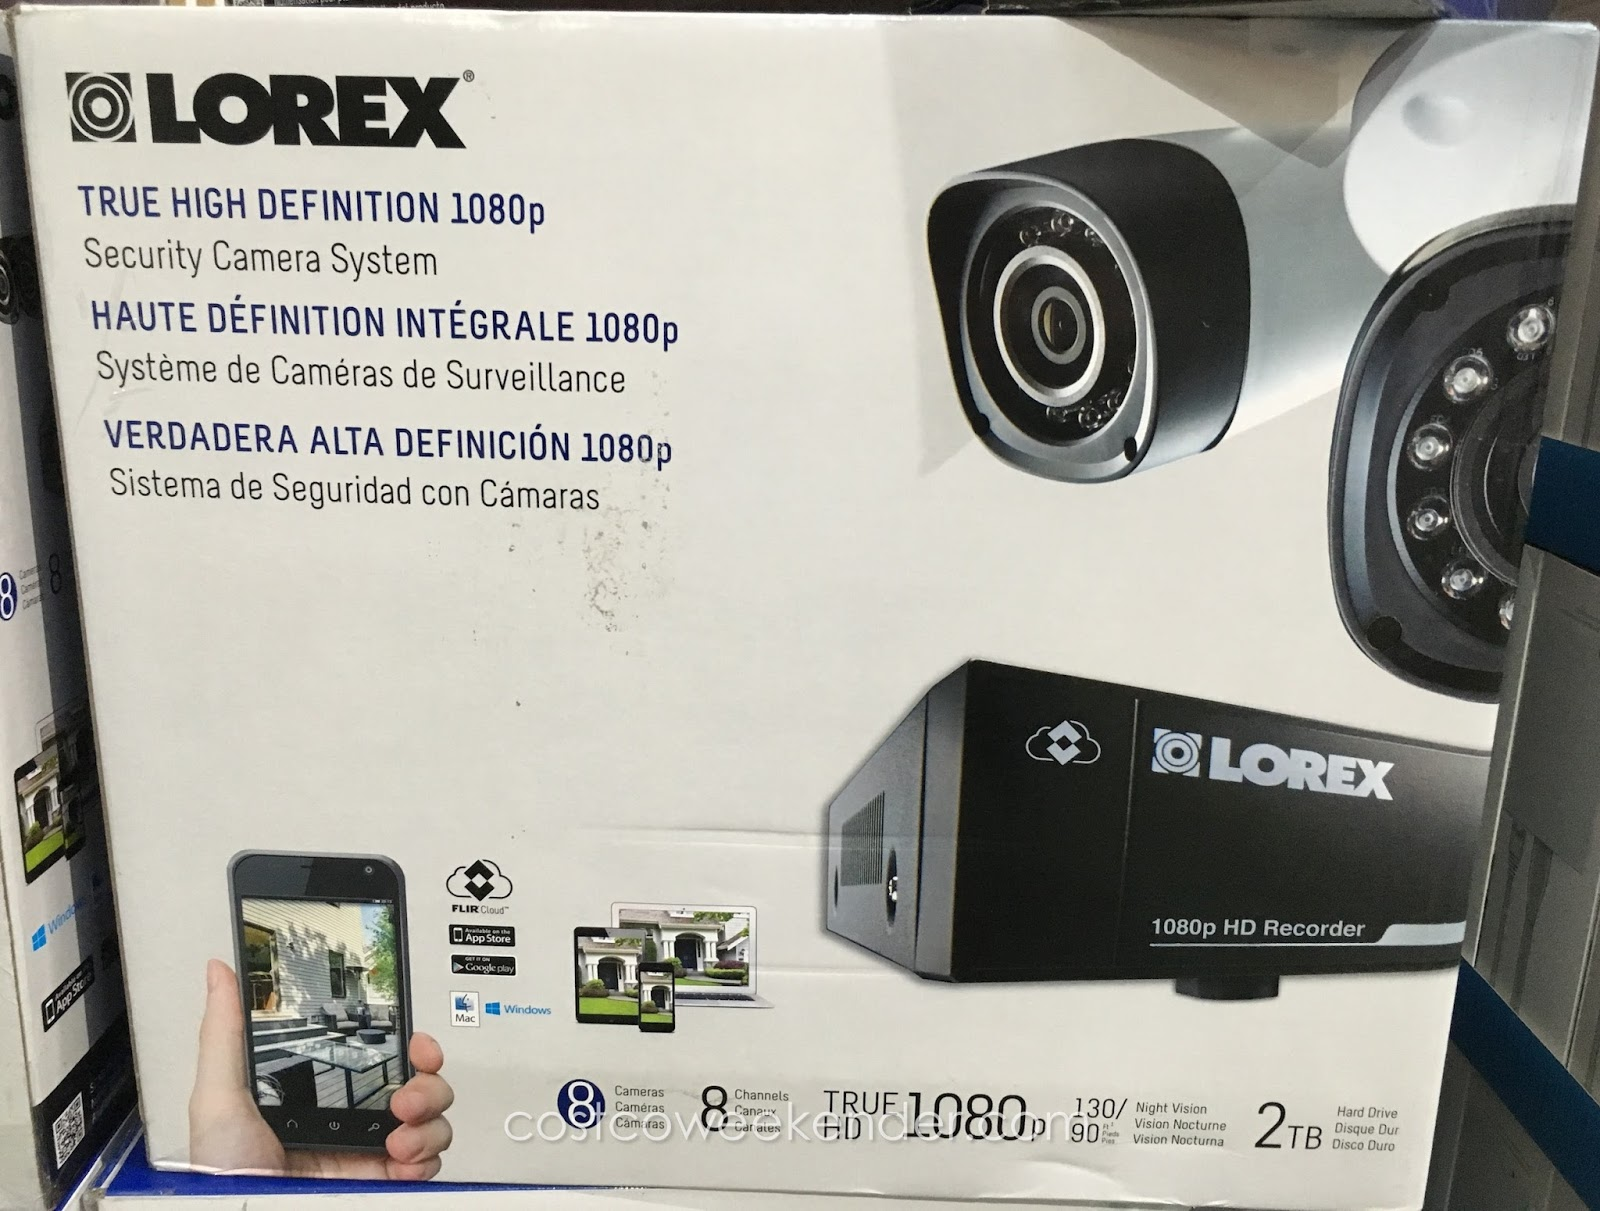 Camera Surveillance Exterieur Costco Lorex Lhv828 1080p Surveillance System Costco Weekender